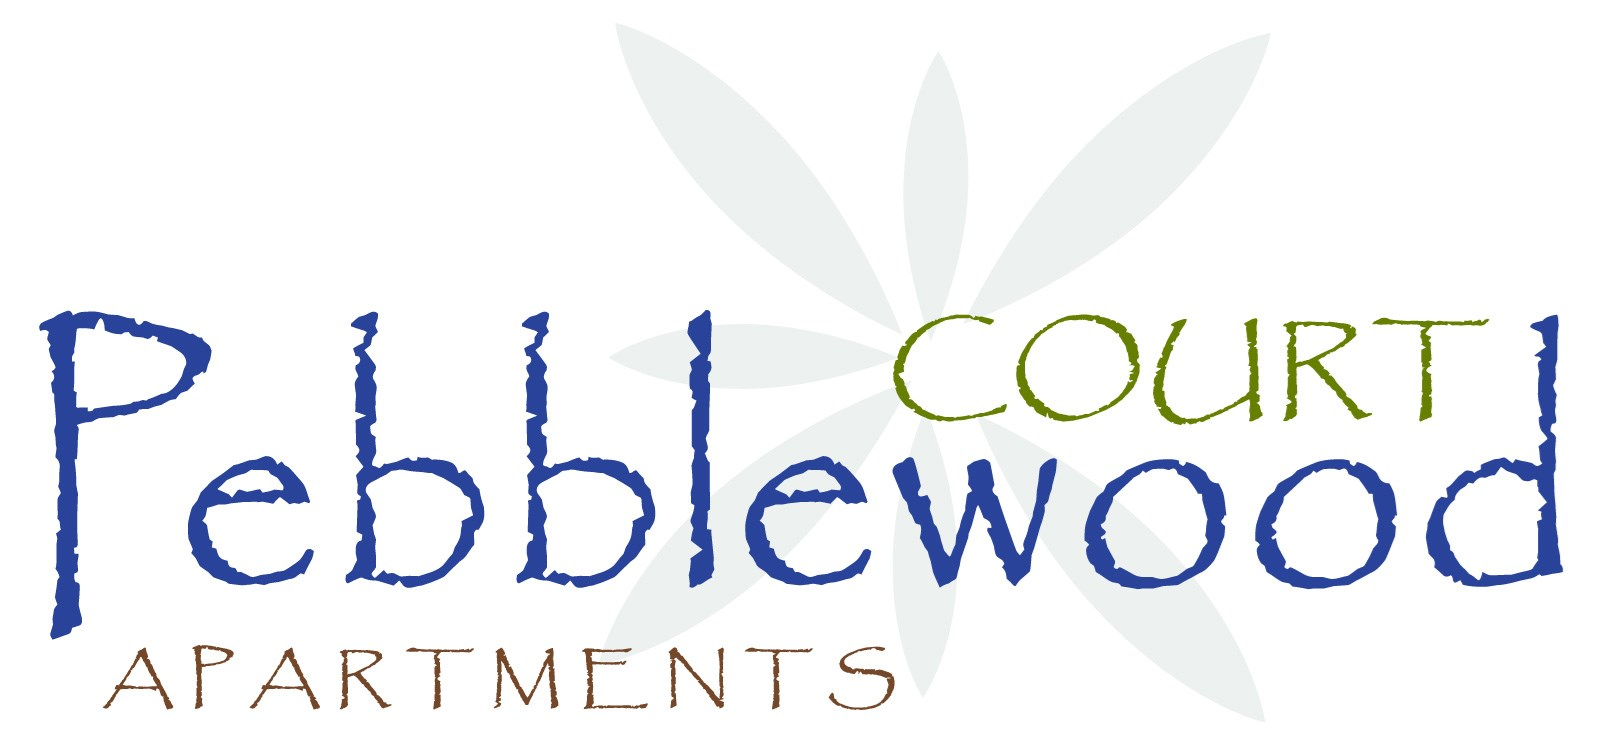 Pebblewood Court | Apartments In Hanover Park, IL